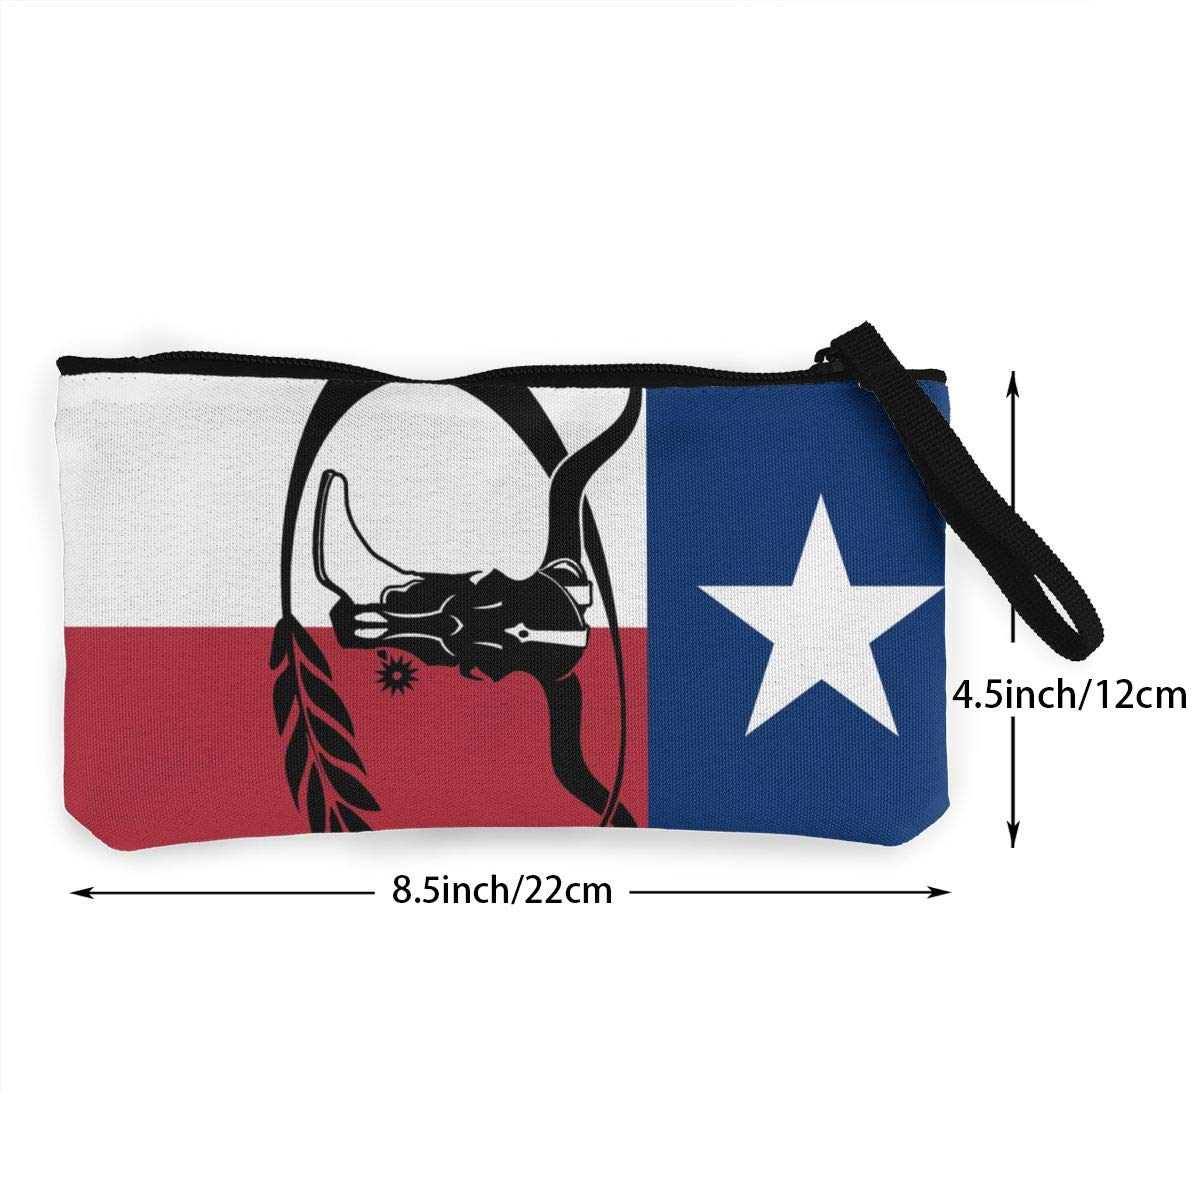 Maple Memories Texas Flag Portable Canvas Coin Purse Change Purse Pouch Mini Wallet Gifts For Women Girls